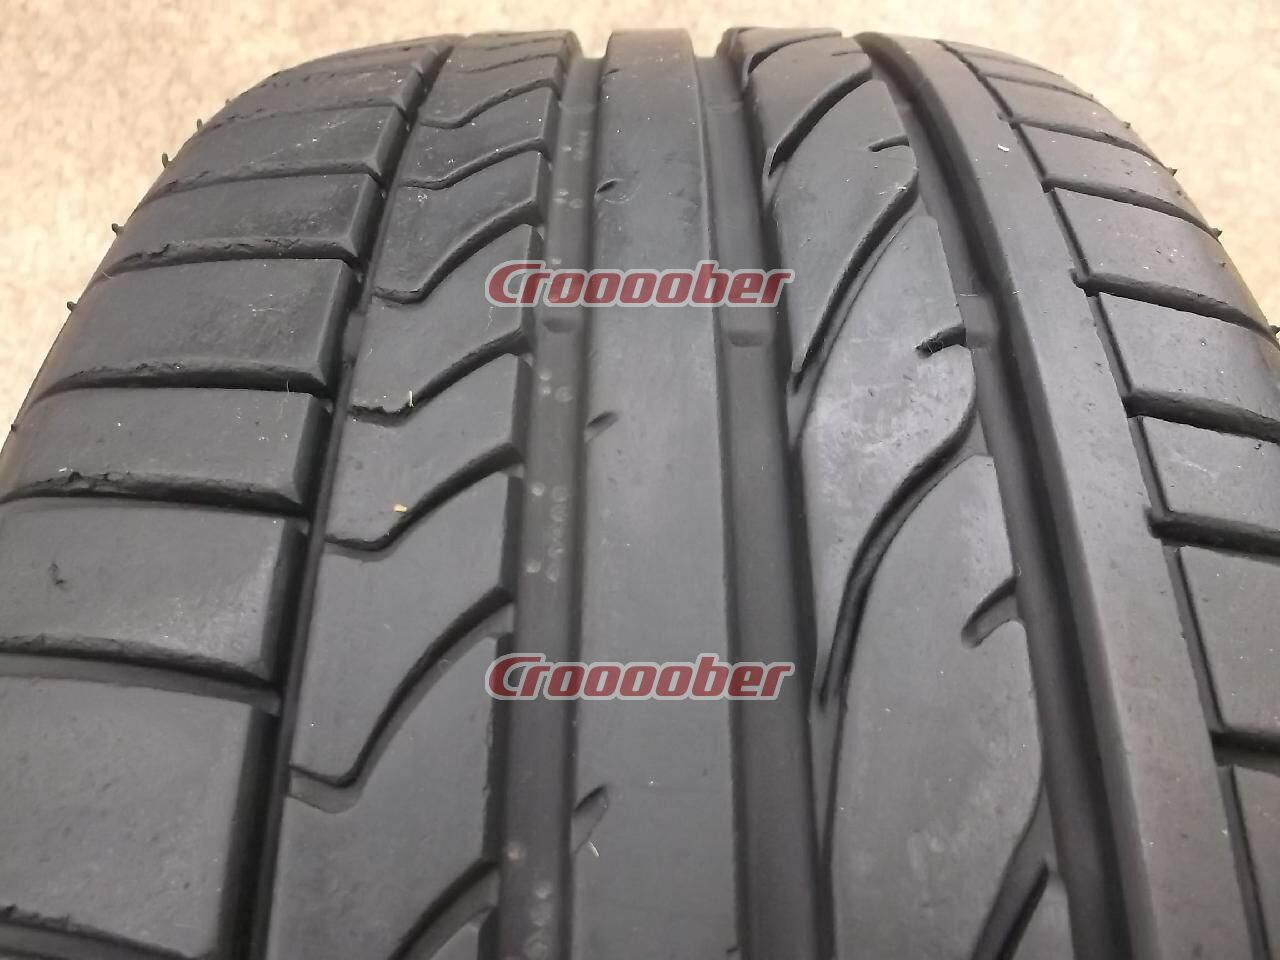 Bridgestone Potenza Re050A >> Bridgestone Potenza Re050a The Old Year Of Manufacture 16 Inch Tire Croooober